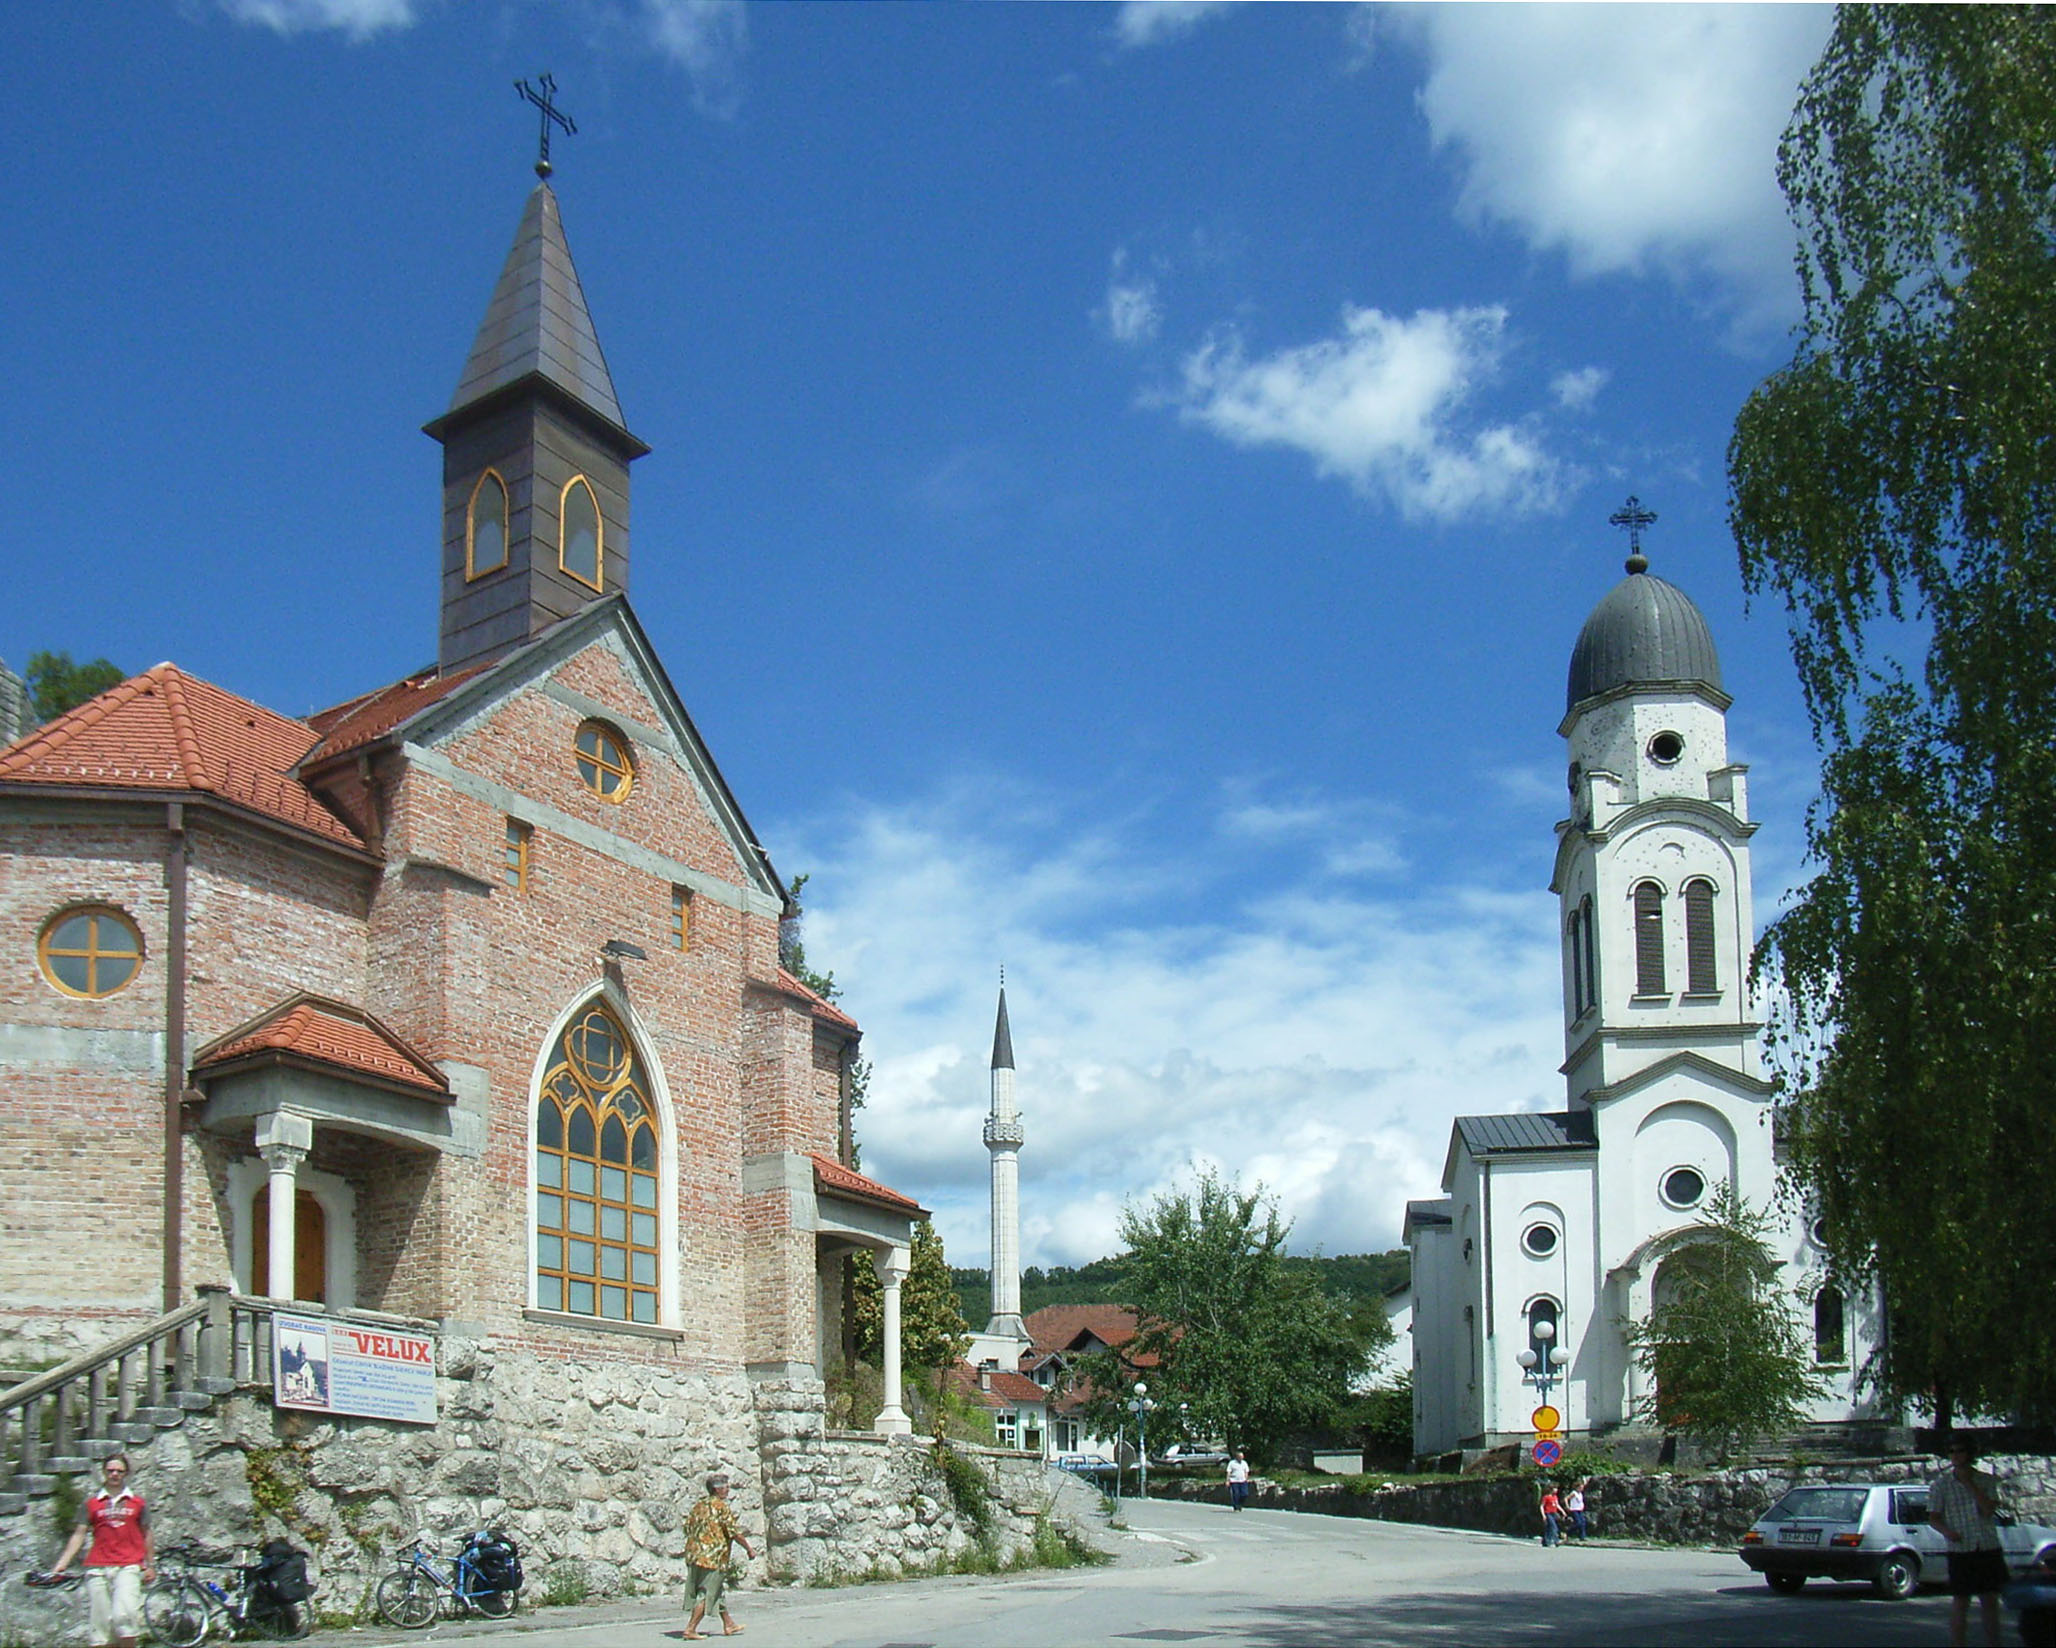 https://upload.wikimedia.org/wikipedia/commons/8/86/Bosanska_Krupa_Churches.JPG